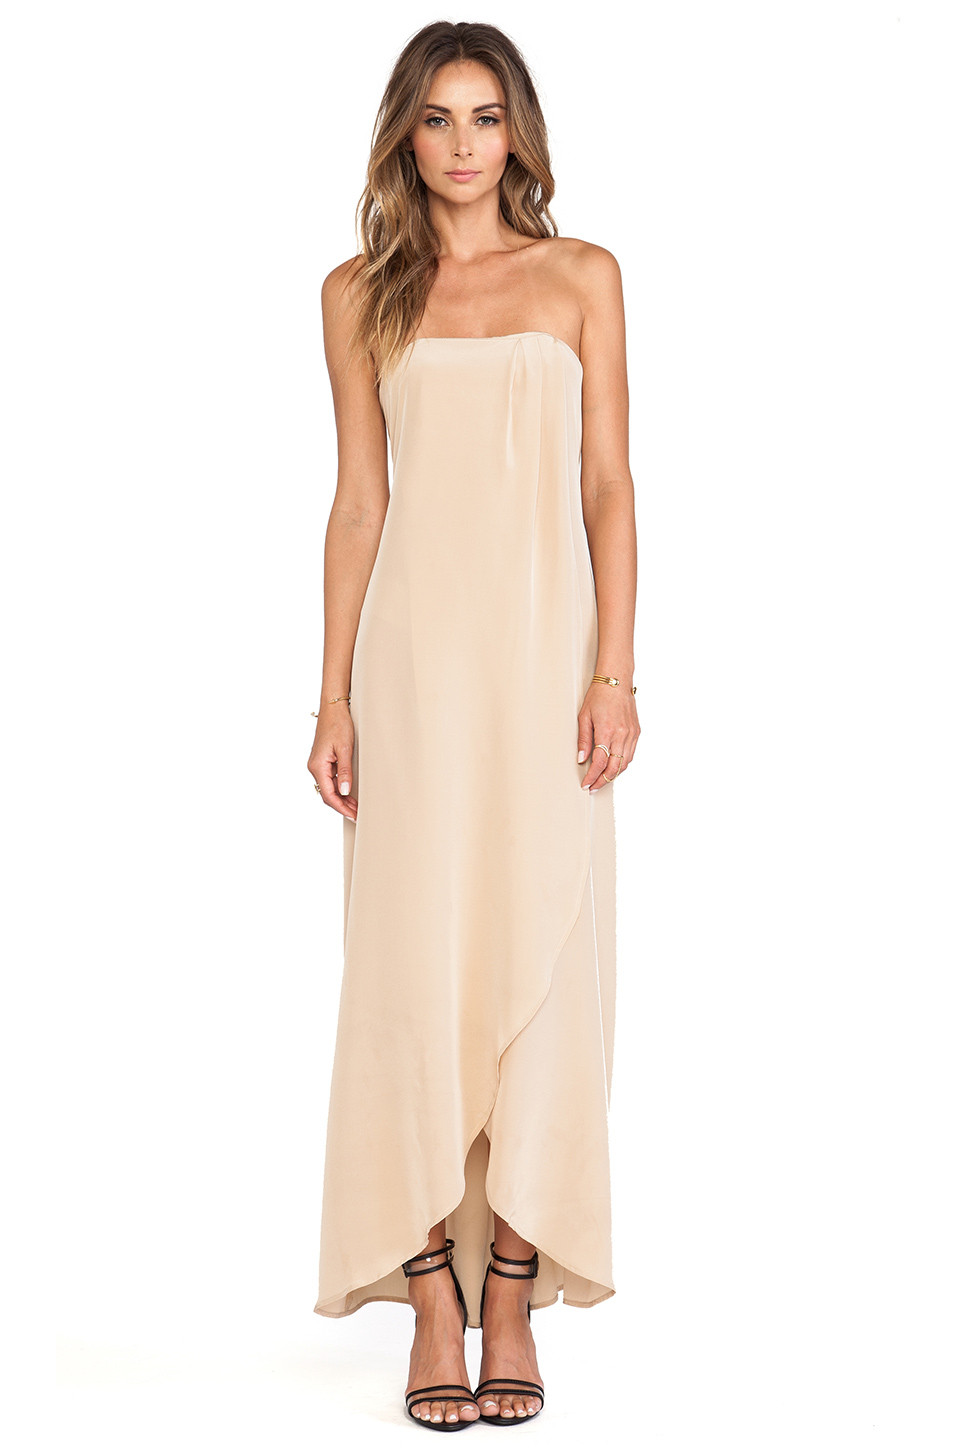 Helena Quinn 'Karin' maxi dress, $298